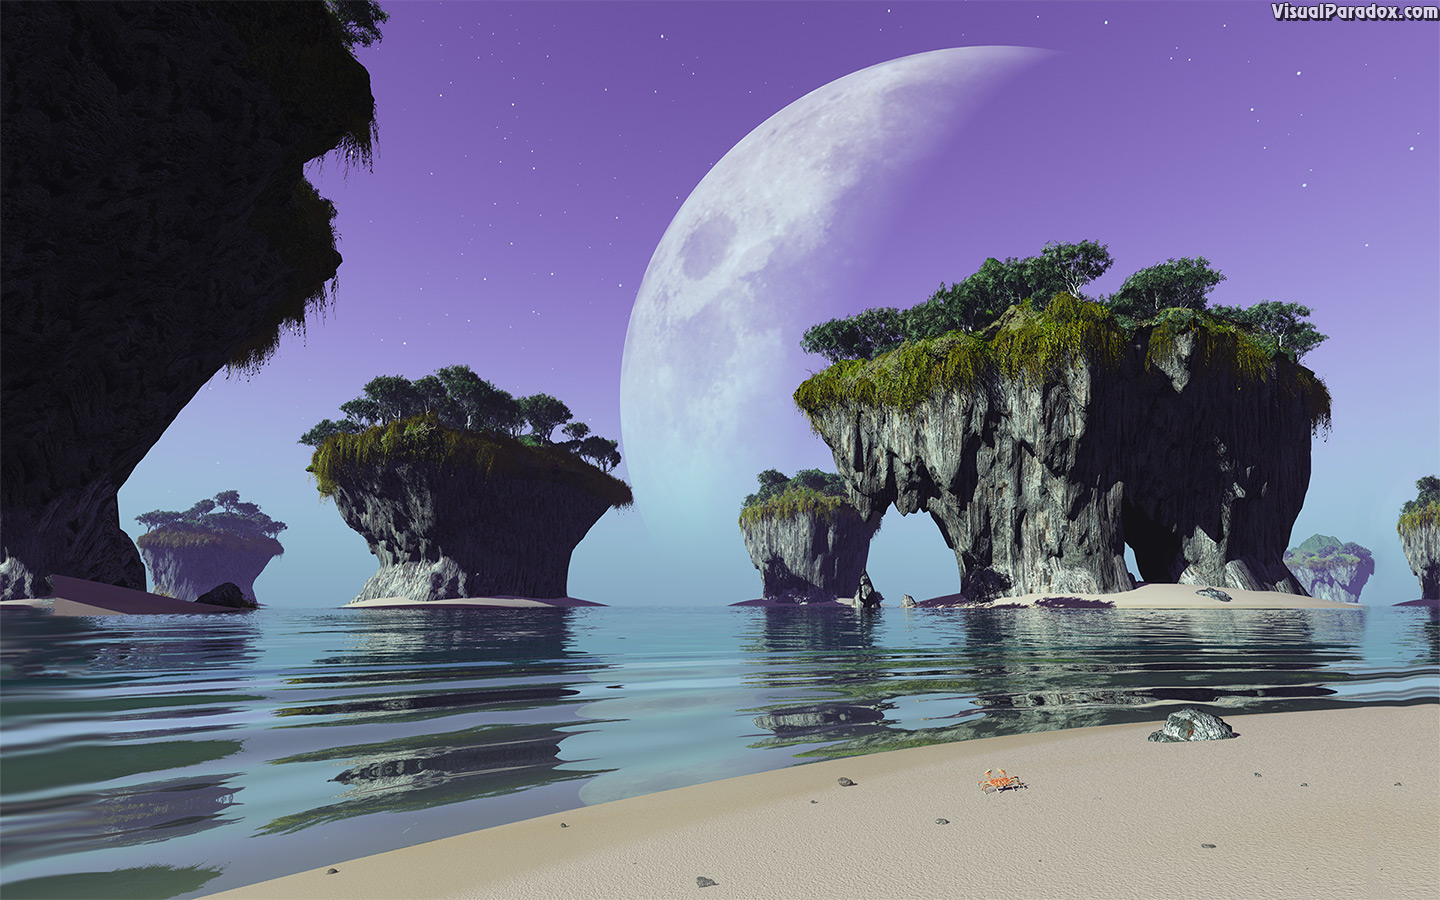 crab, alien, moon, ocean, sea, waves, erosion, planet, mountain, rocks, cliffs, overhang, sky, 3d, wallpaper